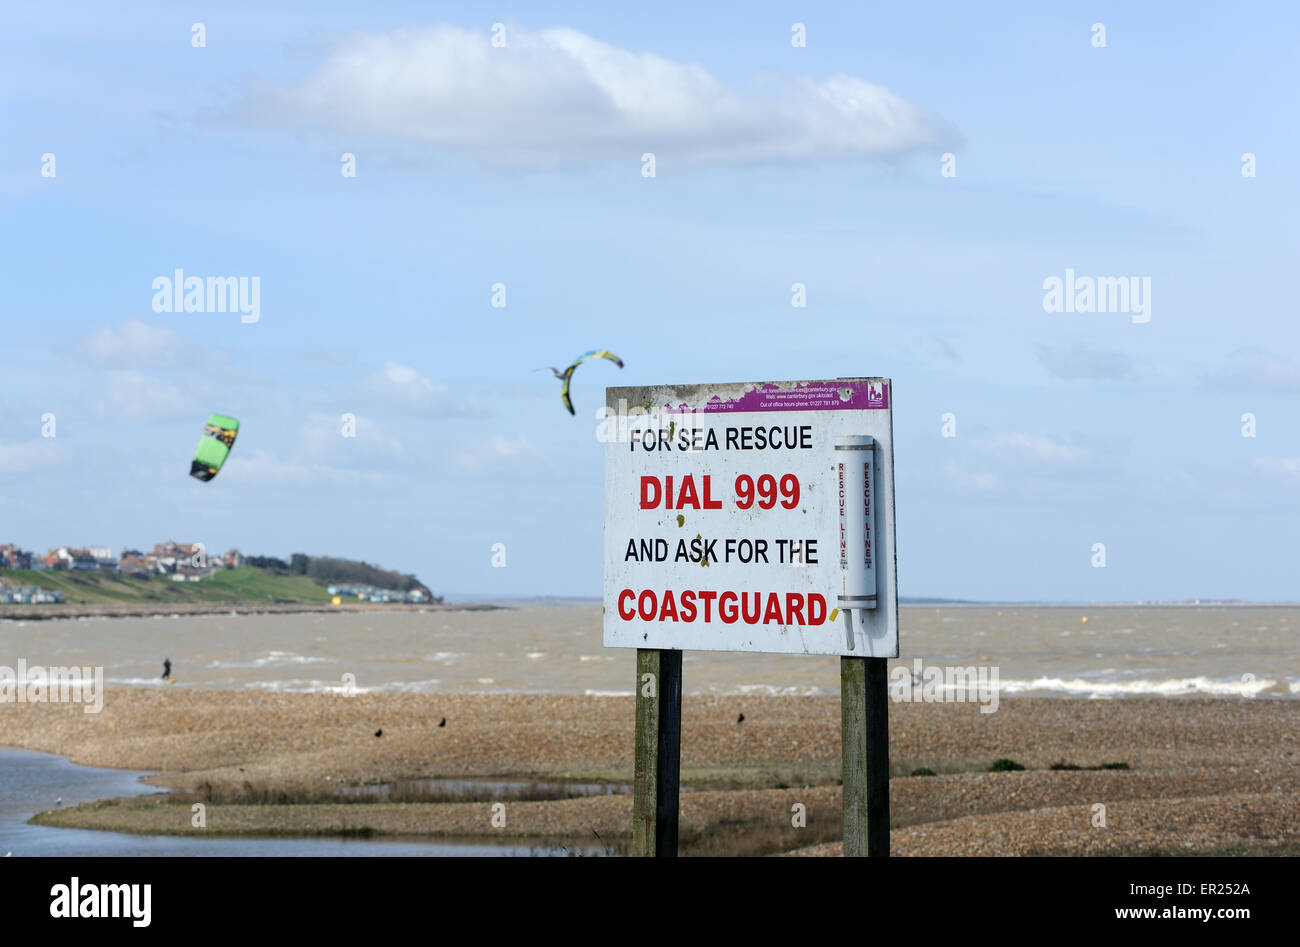 A sign on the beach at Whitstable saying dial 999 for the coastguard. Kitesurfers are in the background. Whitstable, - Stock Image